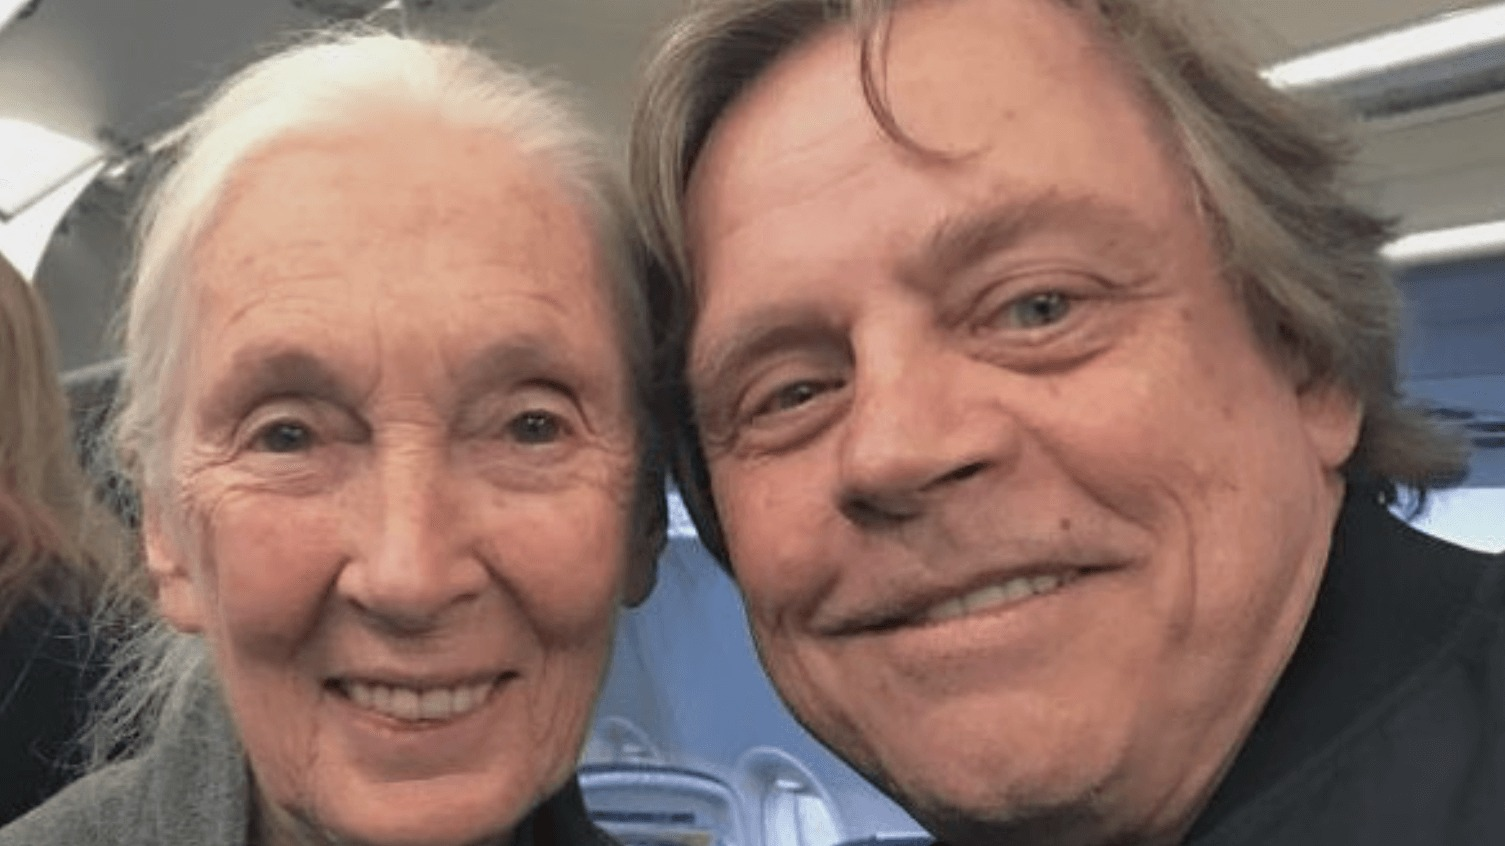 'Star Wars' Actor Mark Hamill Helps Conservationist Jane Goodall Defend All the Chimps in the Galaxy